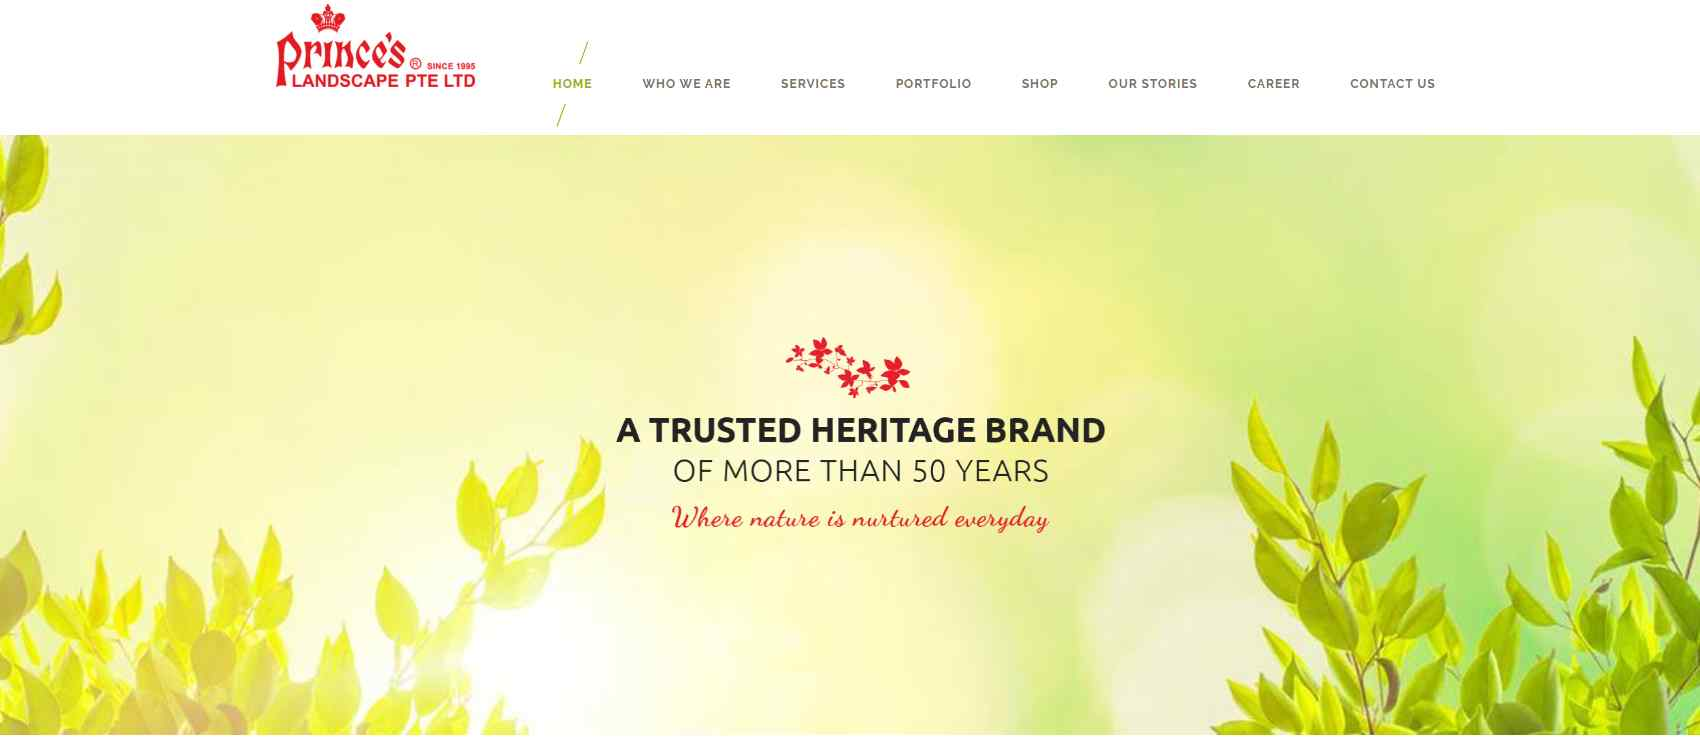 prince landscape Top Horticulture Services in Singapore